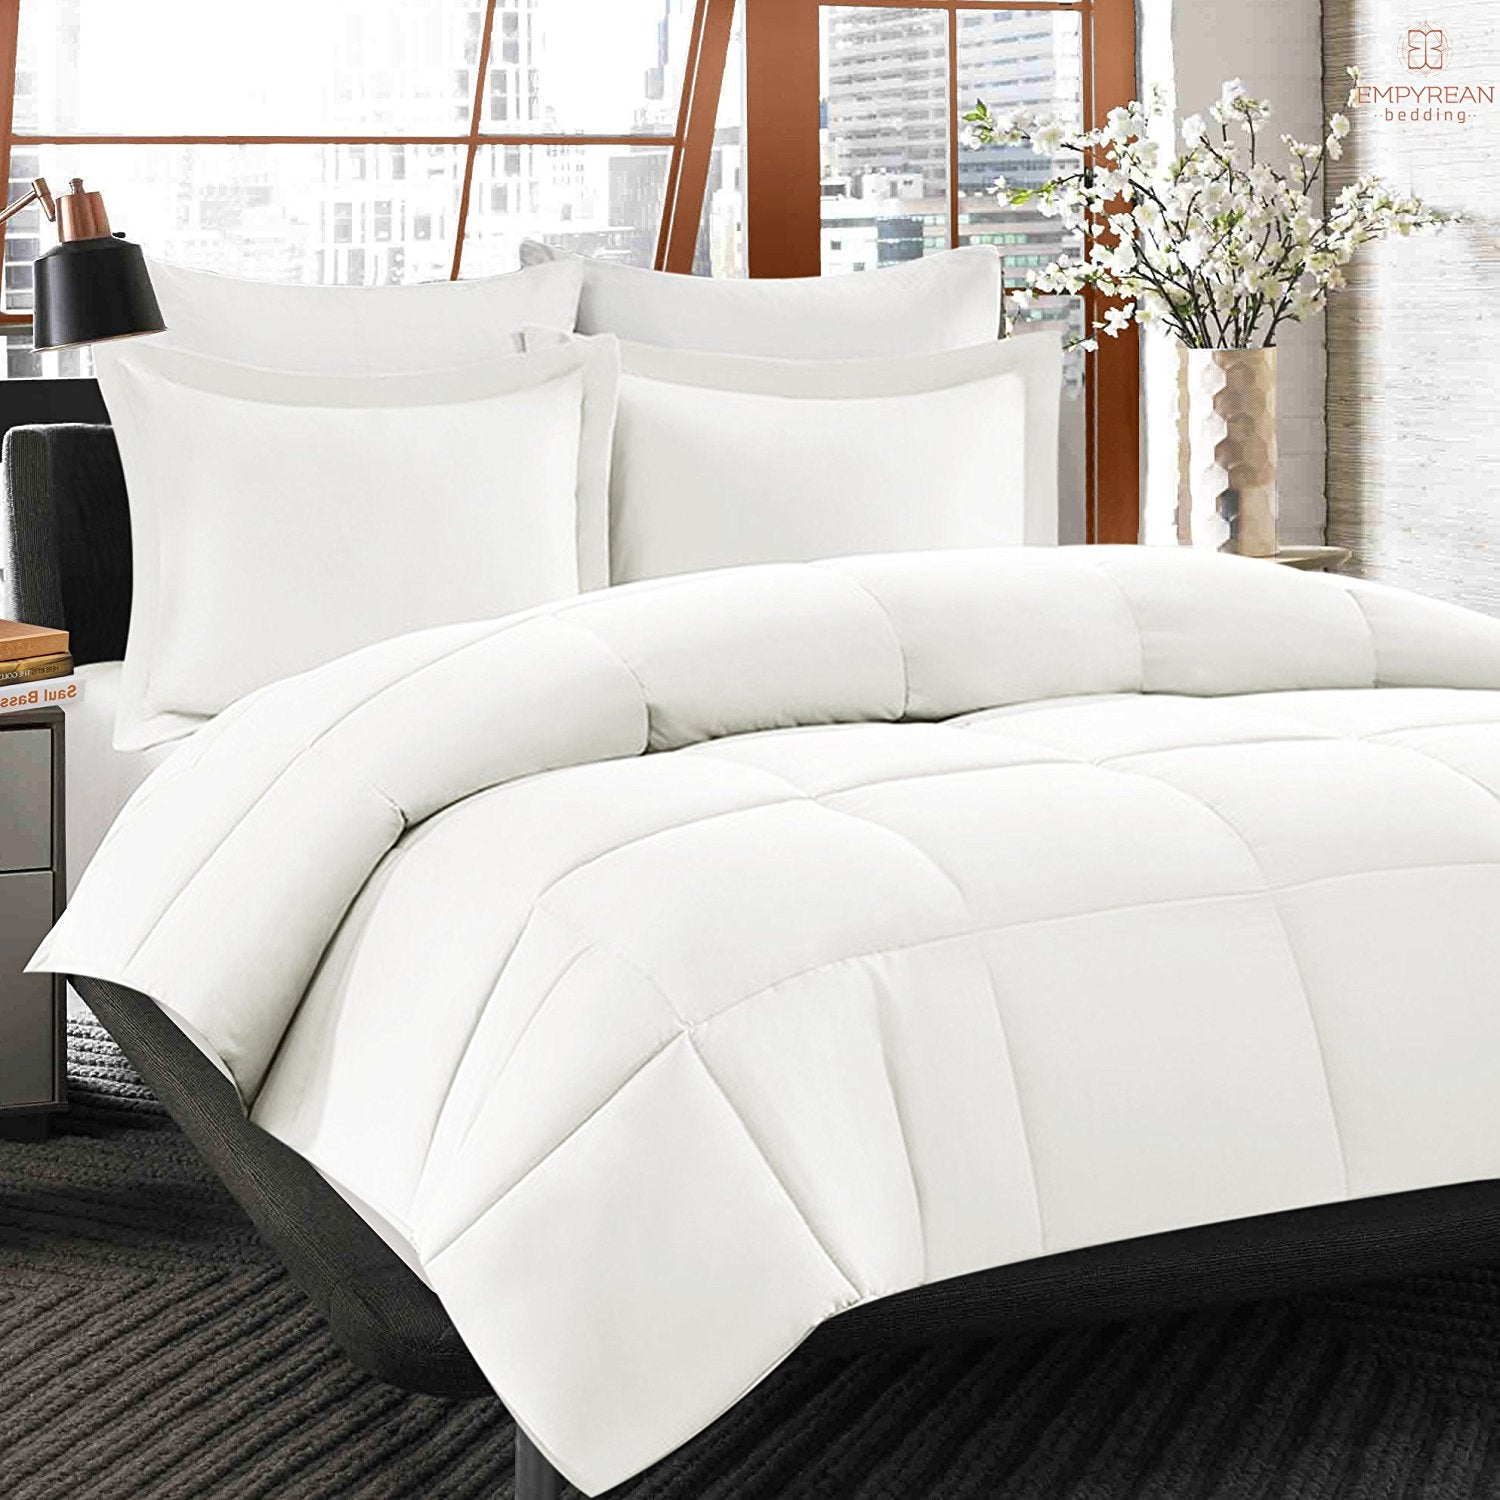 Empyrean Alternative Goose Down Comforter